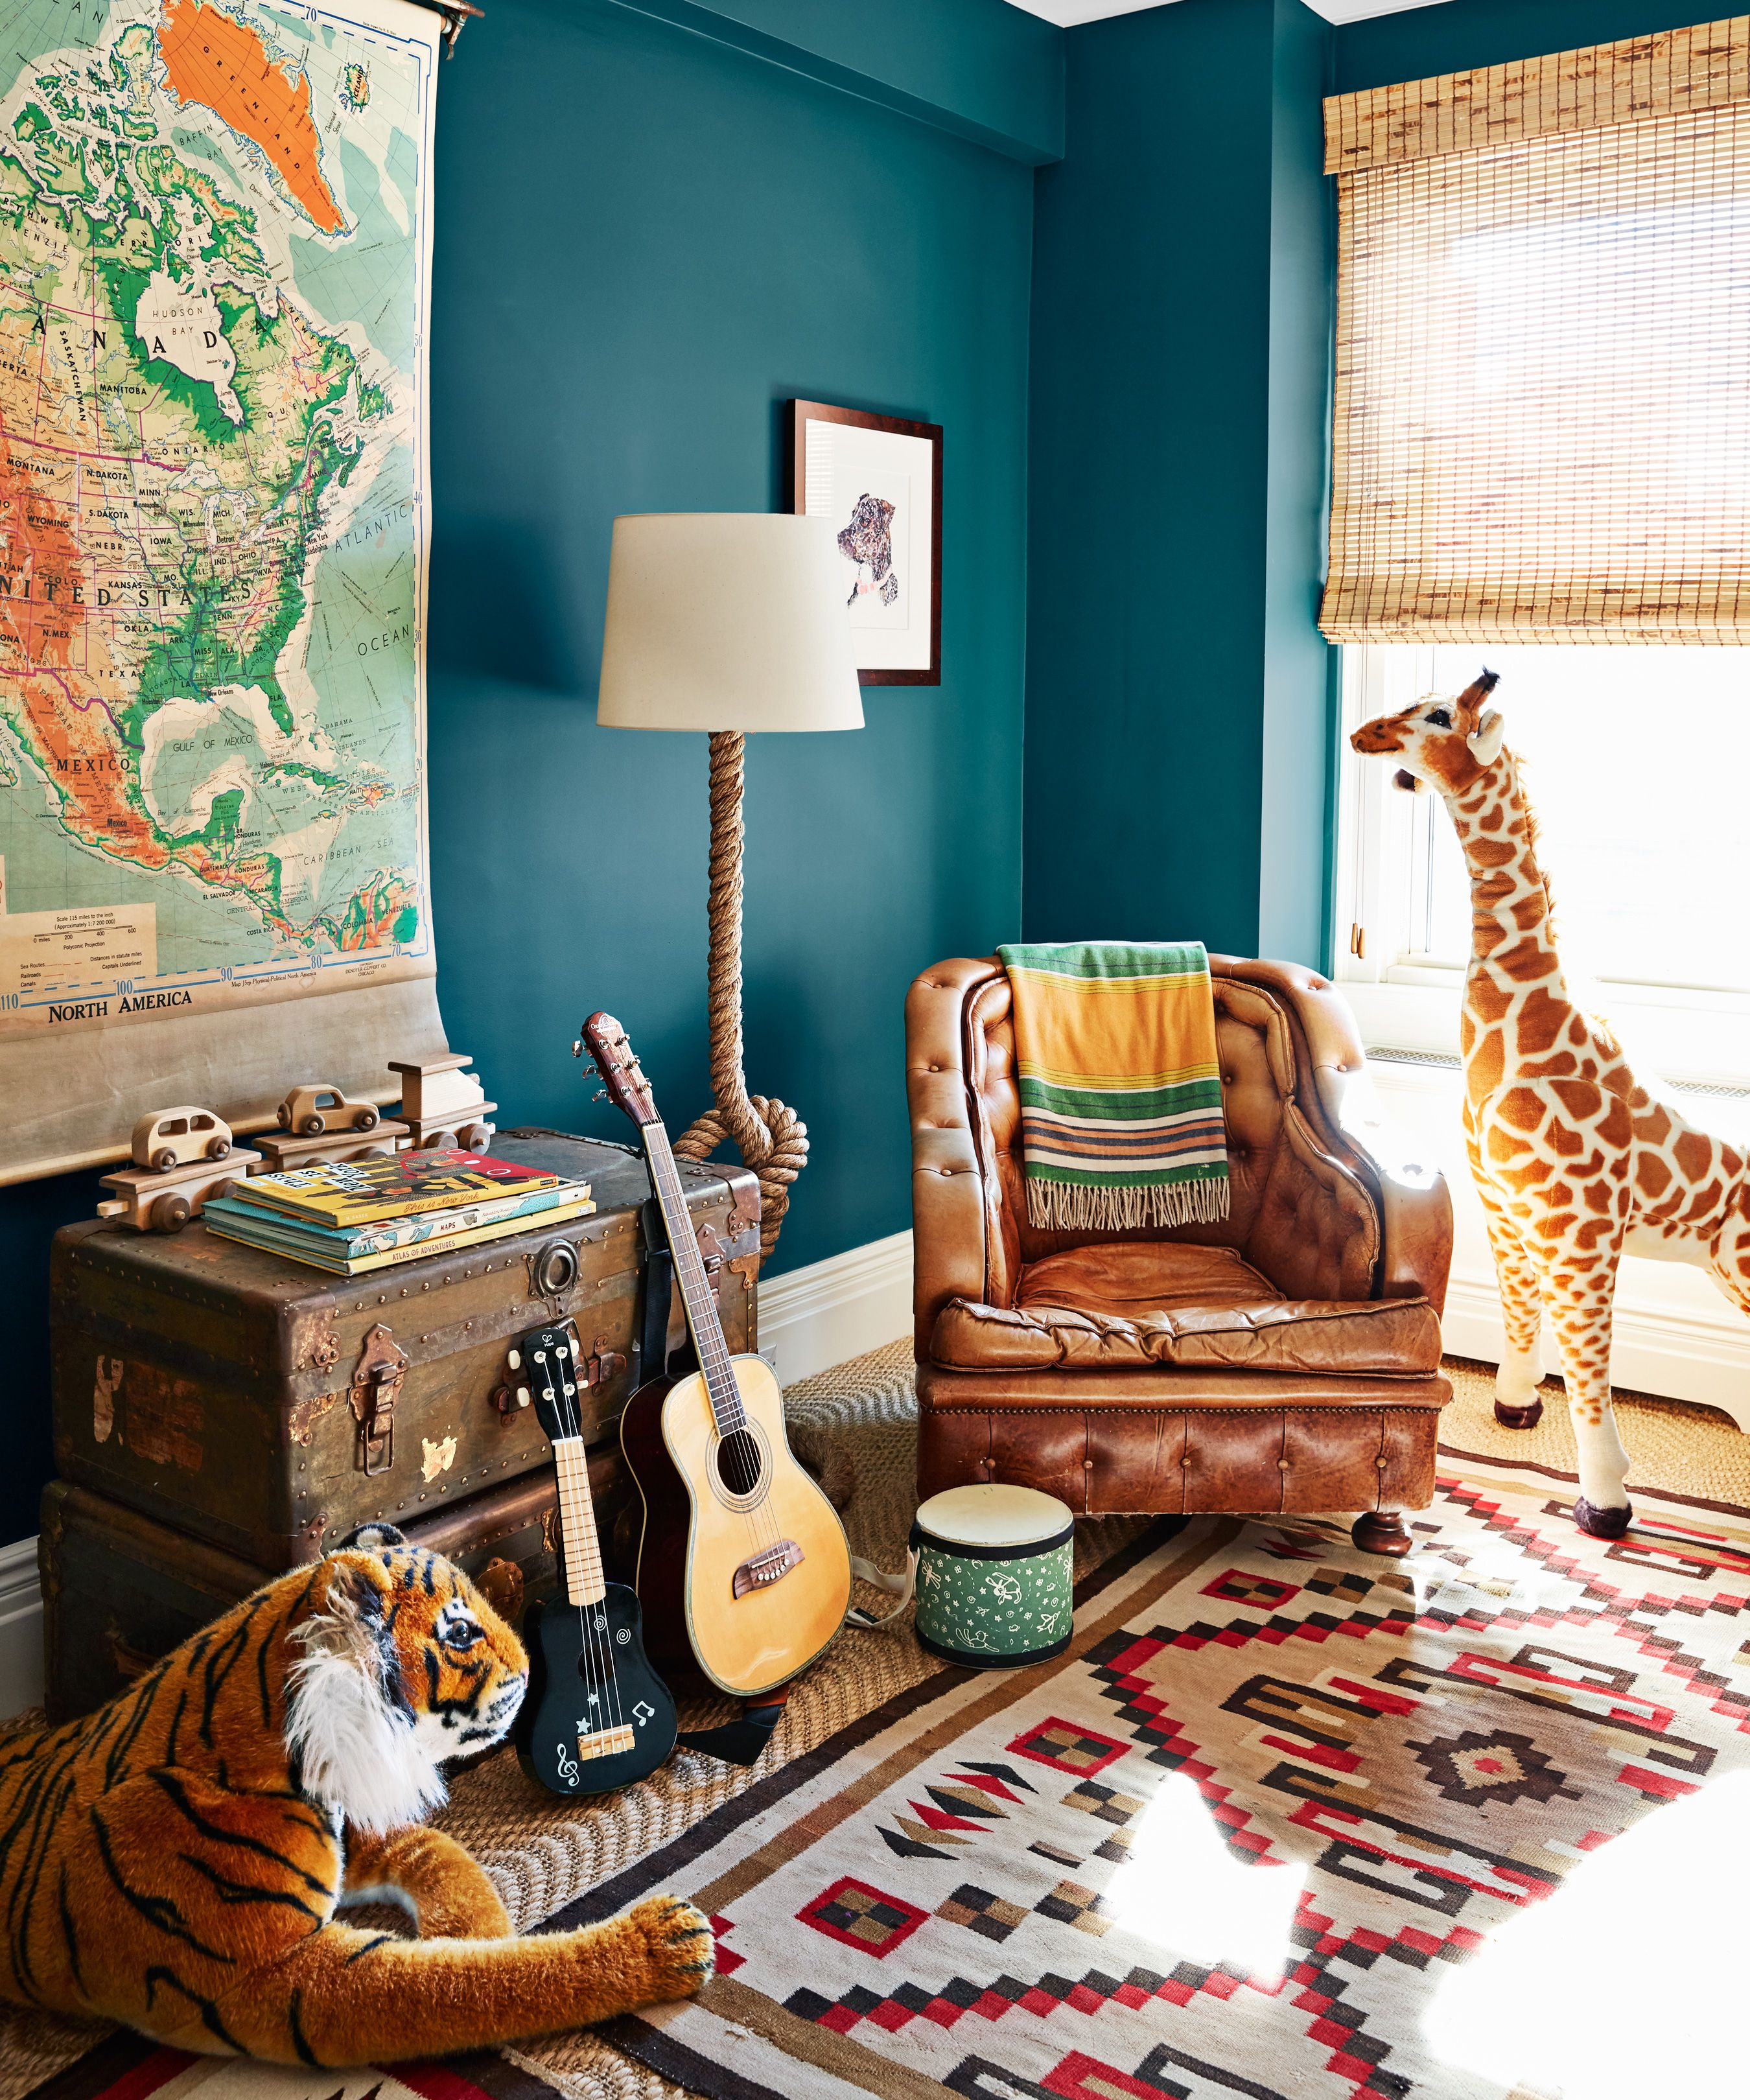 Four Amazing Gender-Neutral Colors for Kids' Rooms